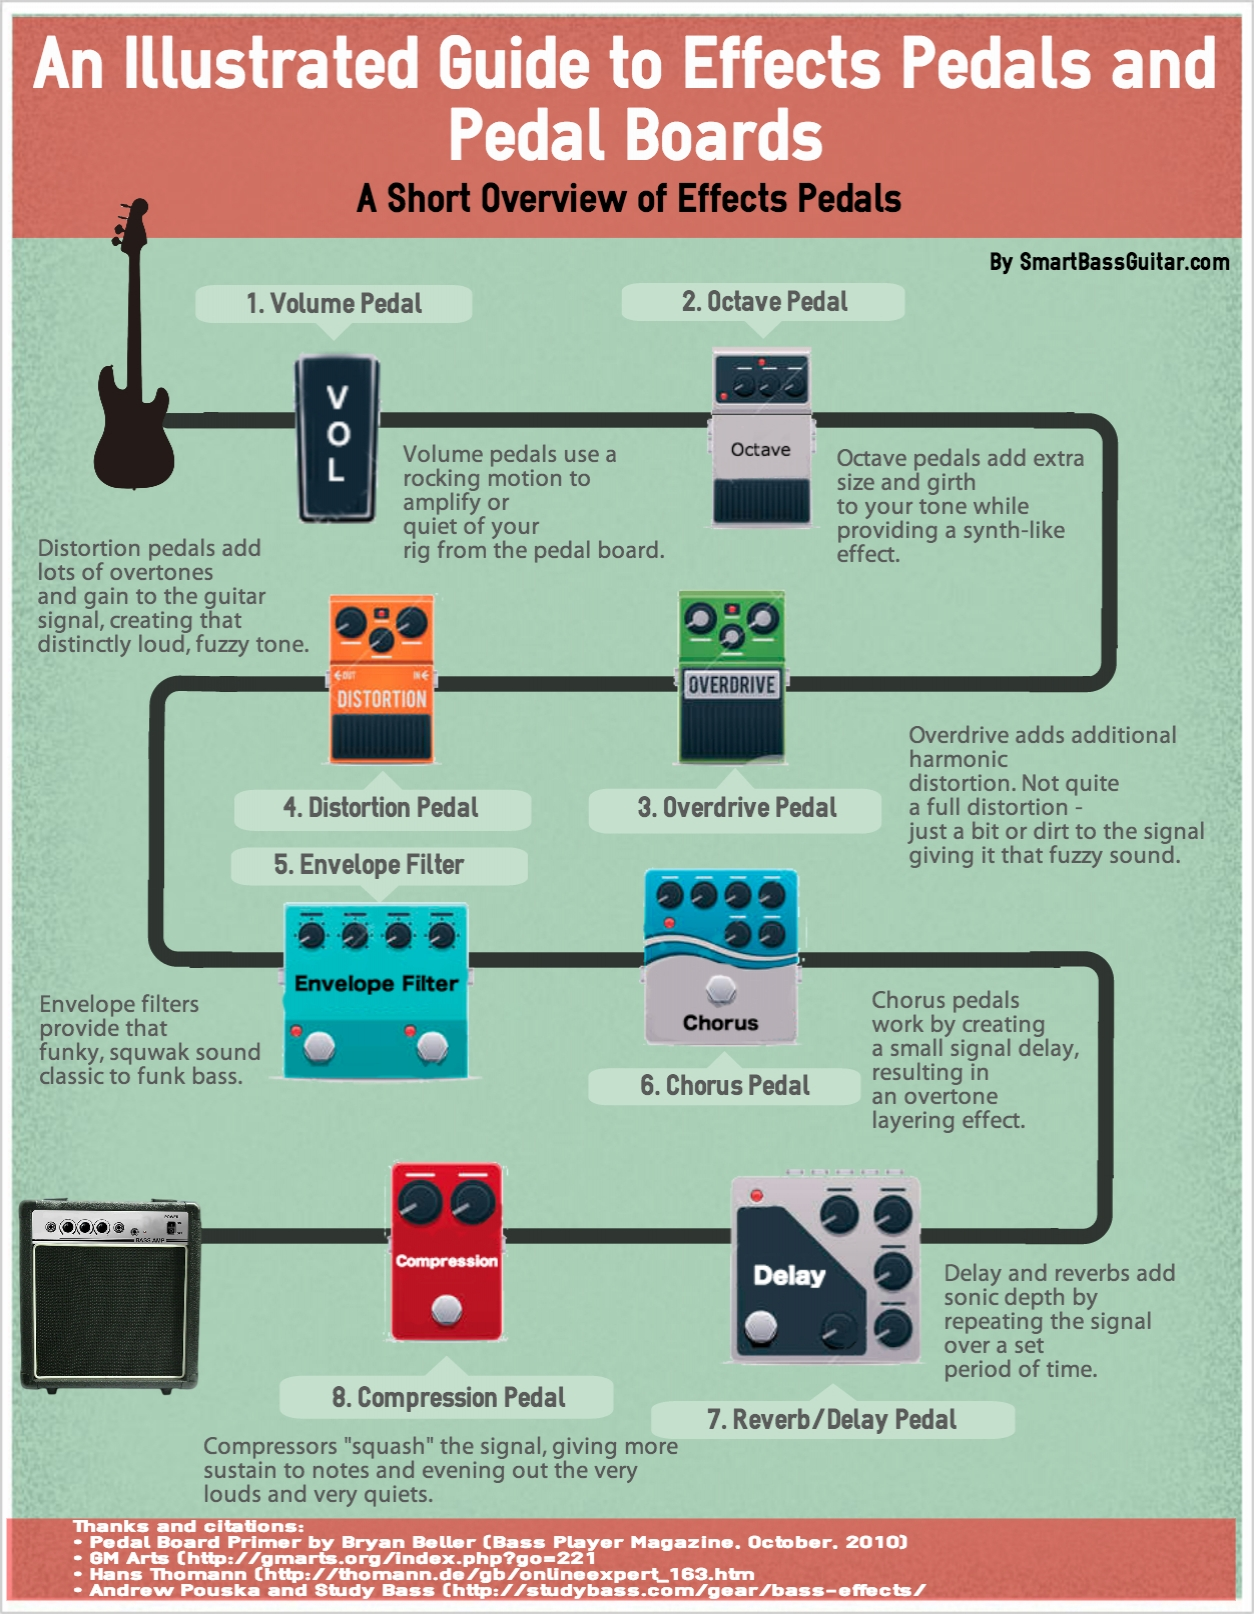 the best bass guitar effects pedals guide you 39 ll ever see infographic. Black Bedroom Furniture Sets. Home Design Ideas